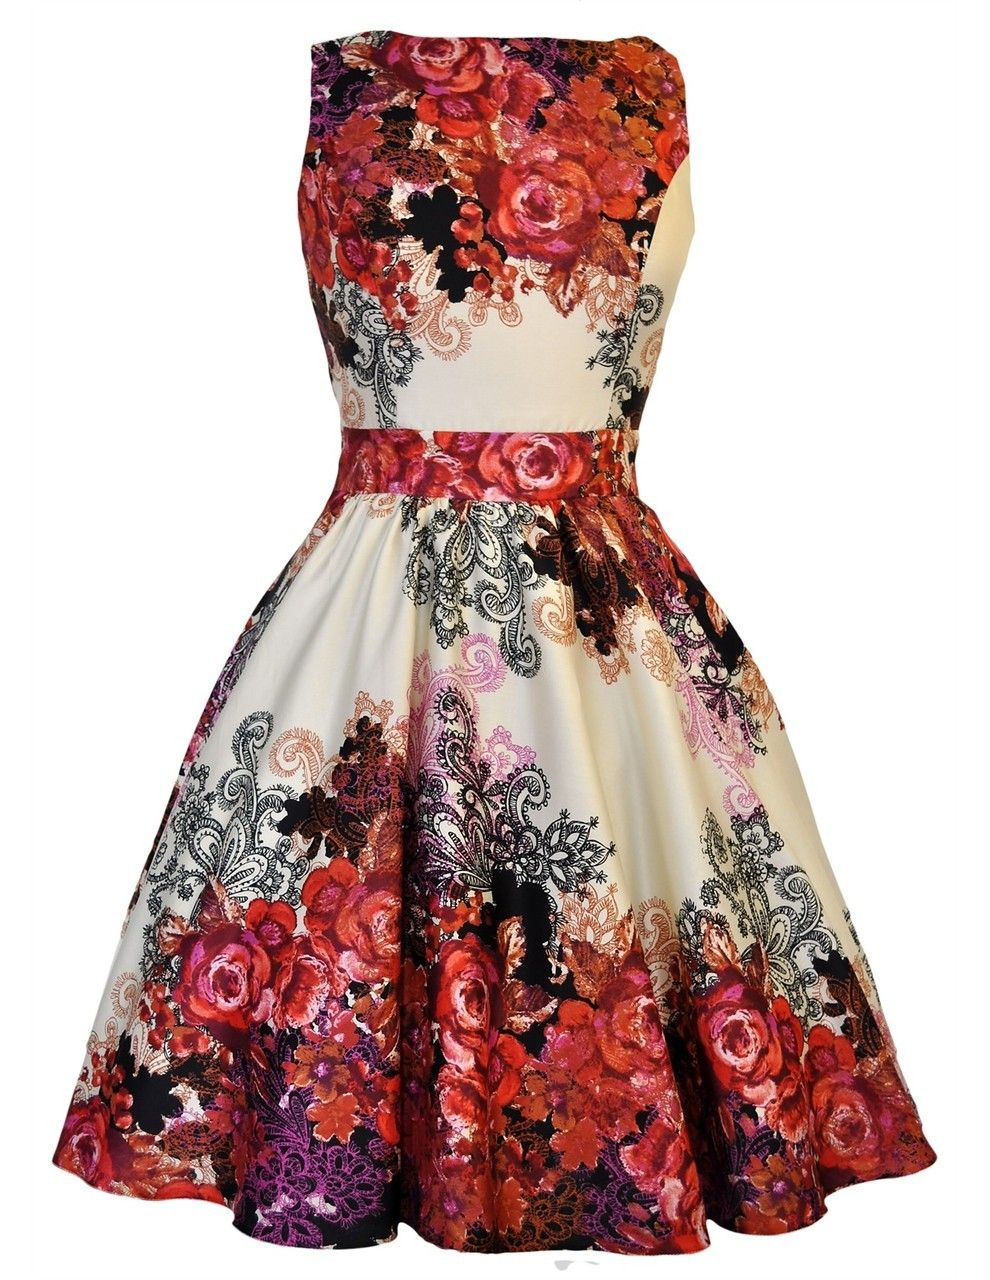 Pretty dress me gorgeous red rose tea dress badass